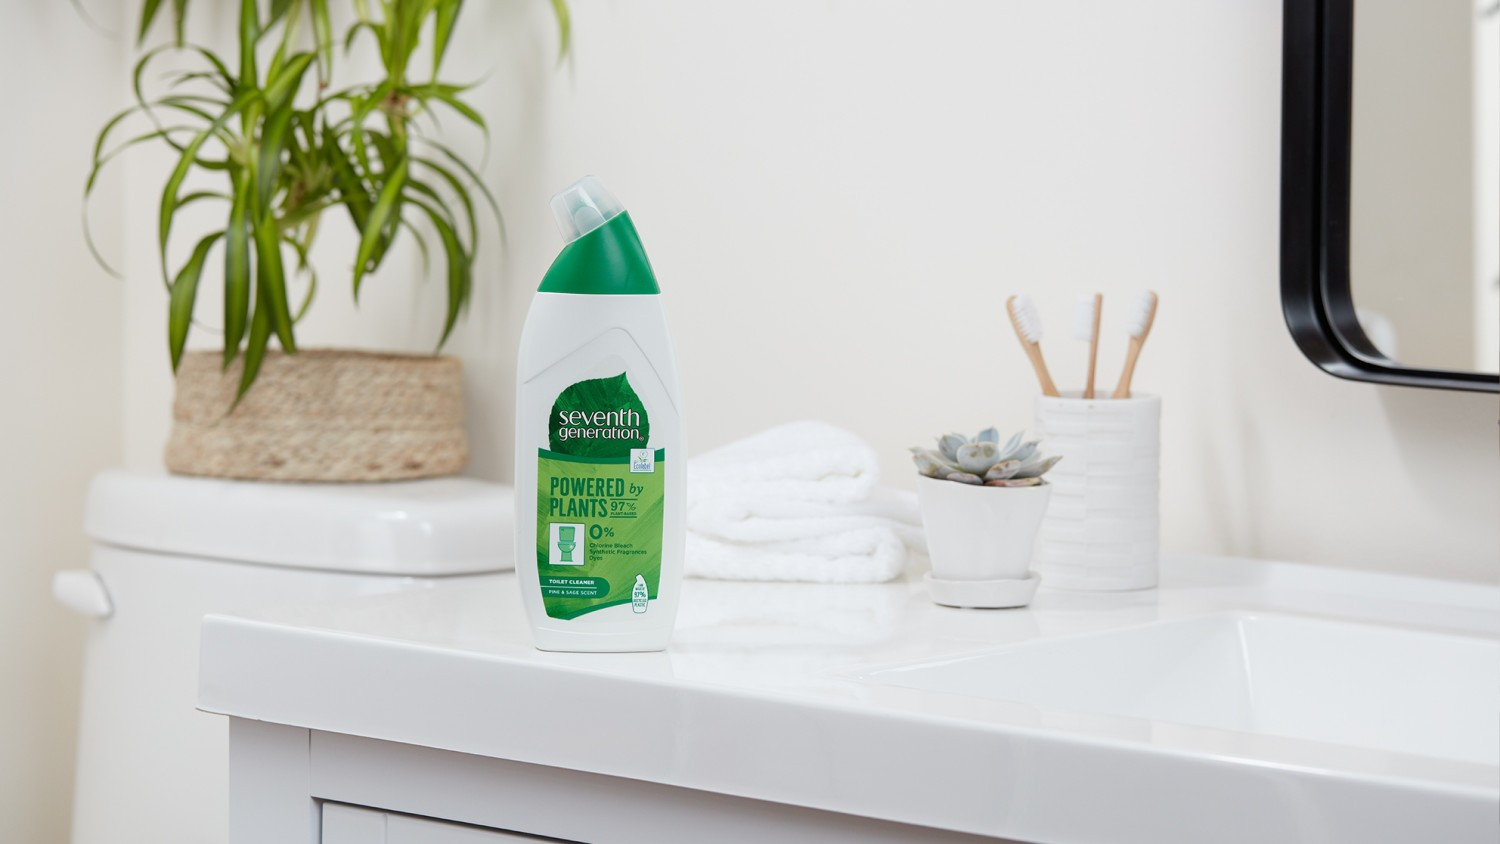 Seventh Generation Toilet Cleaner on the side